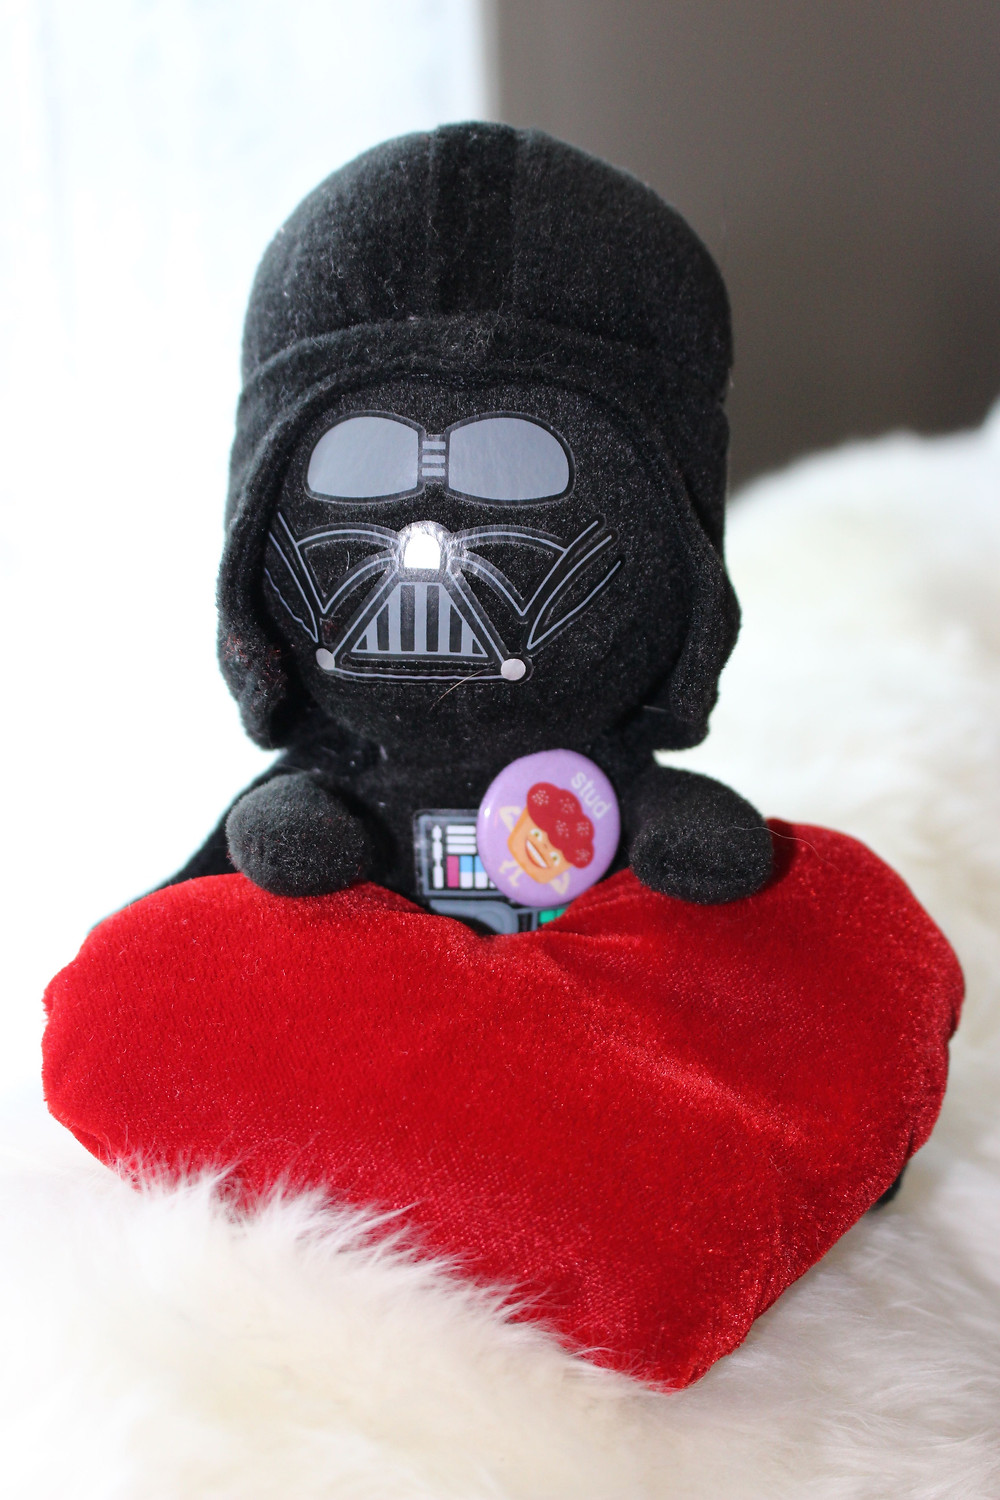 Darth Vader Valentine - BE MINE!.jpg